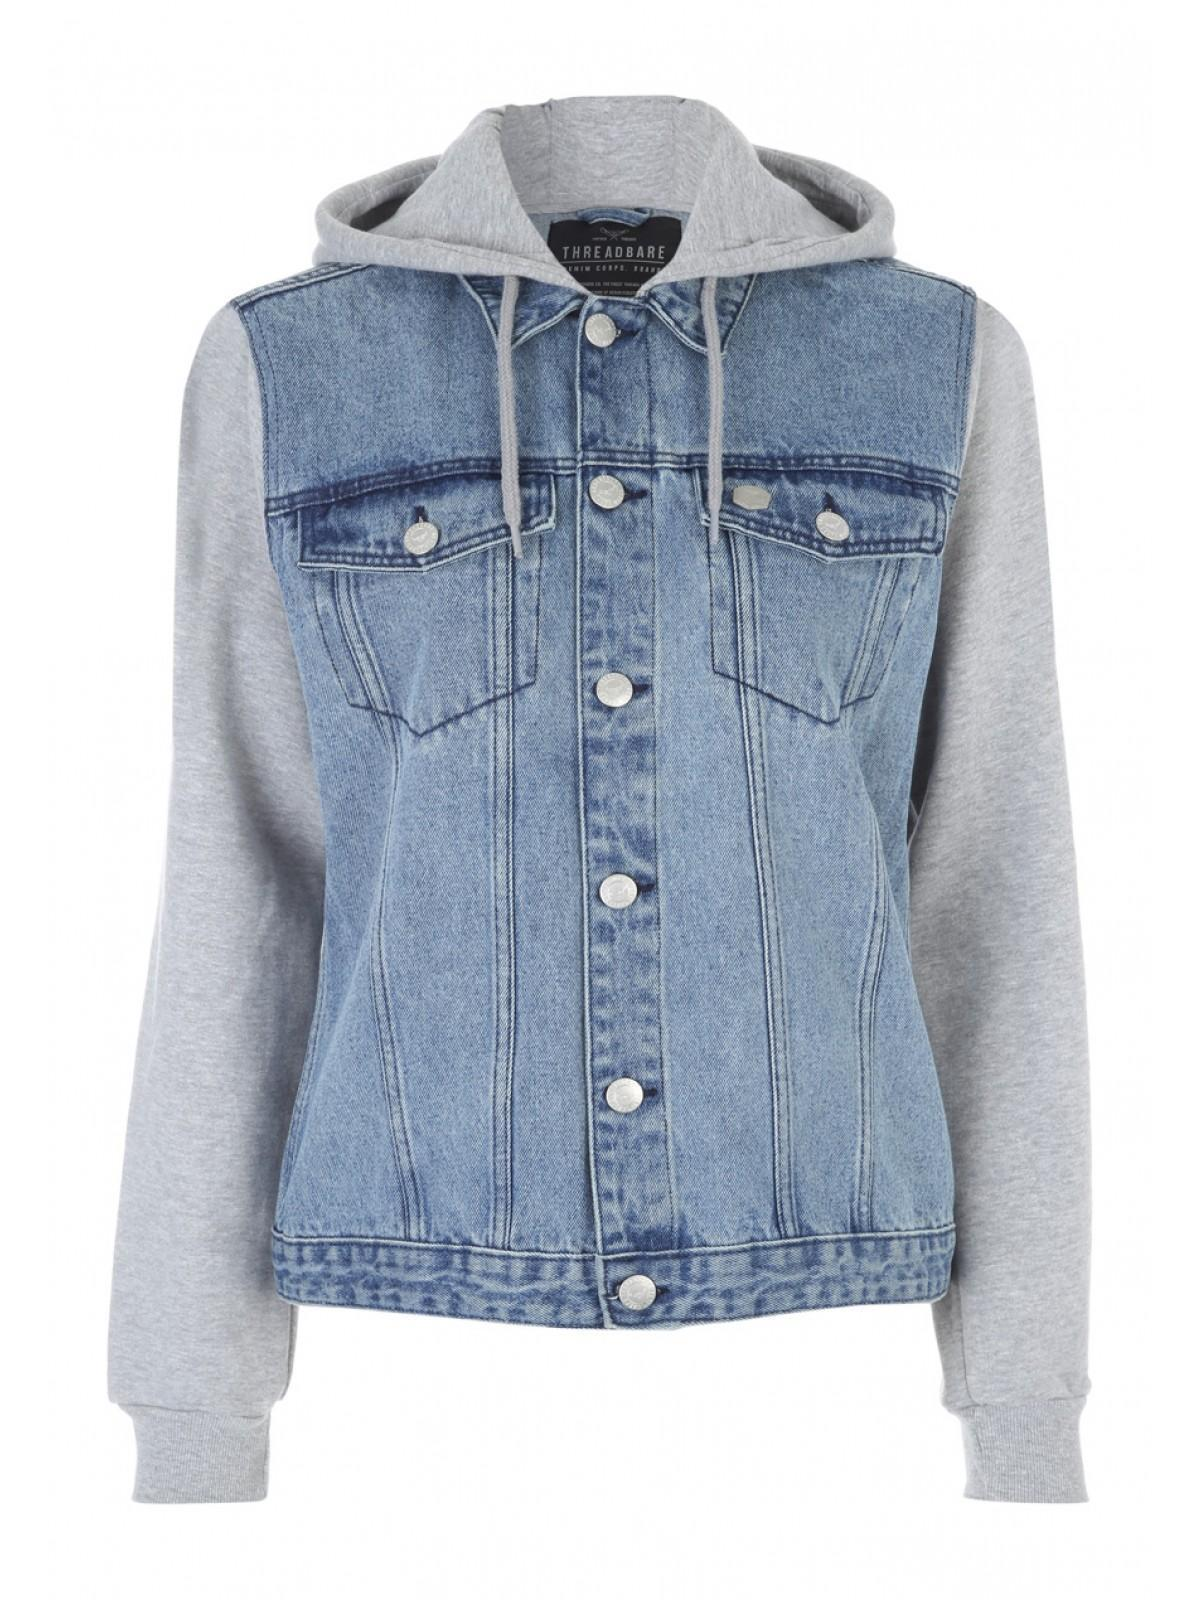 Mens Light Blue Hooded Denim Jacket | Peacocks